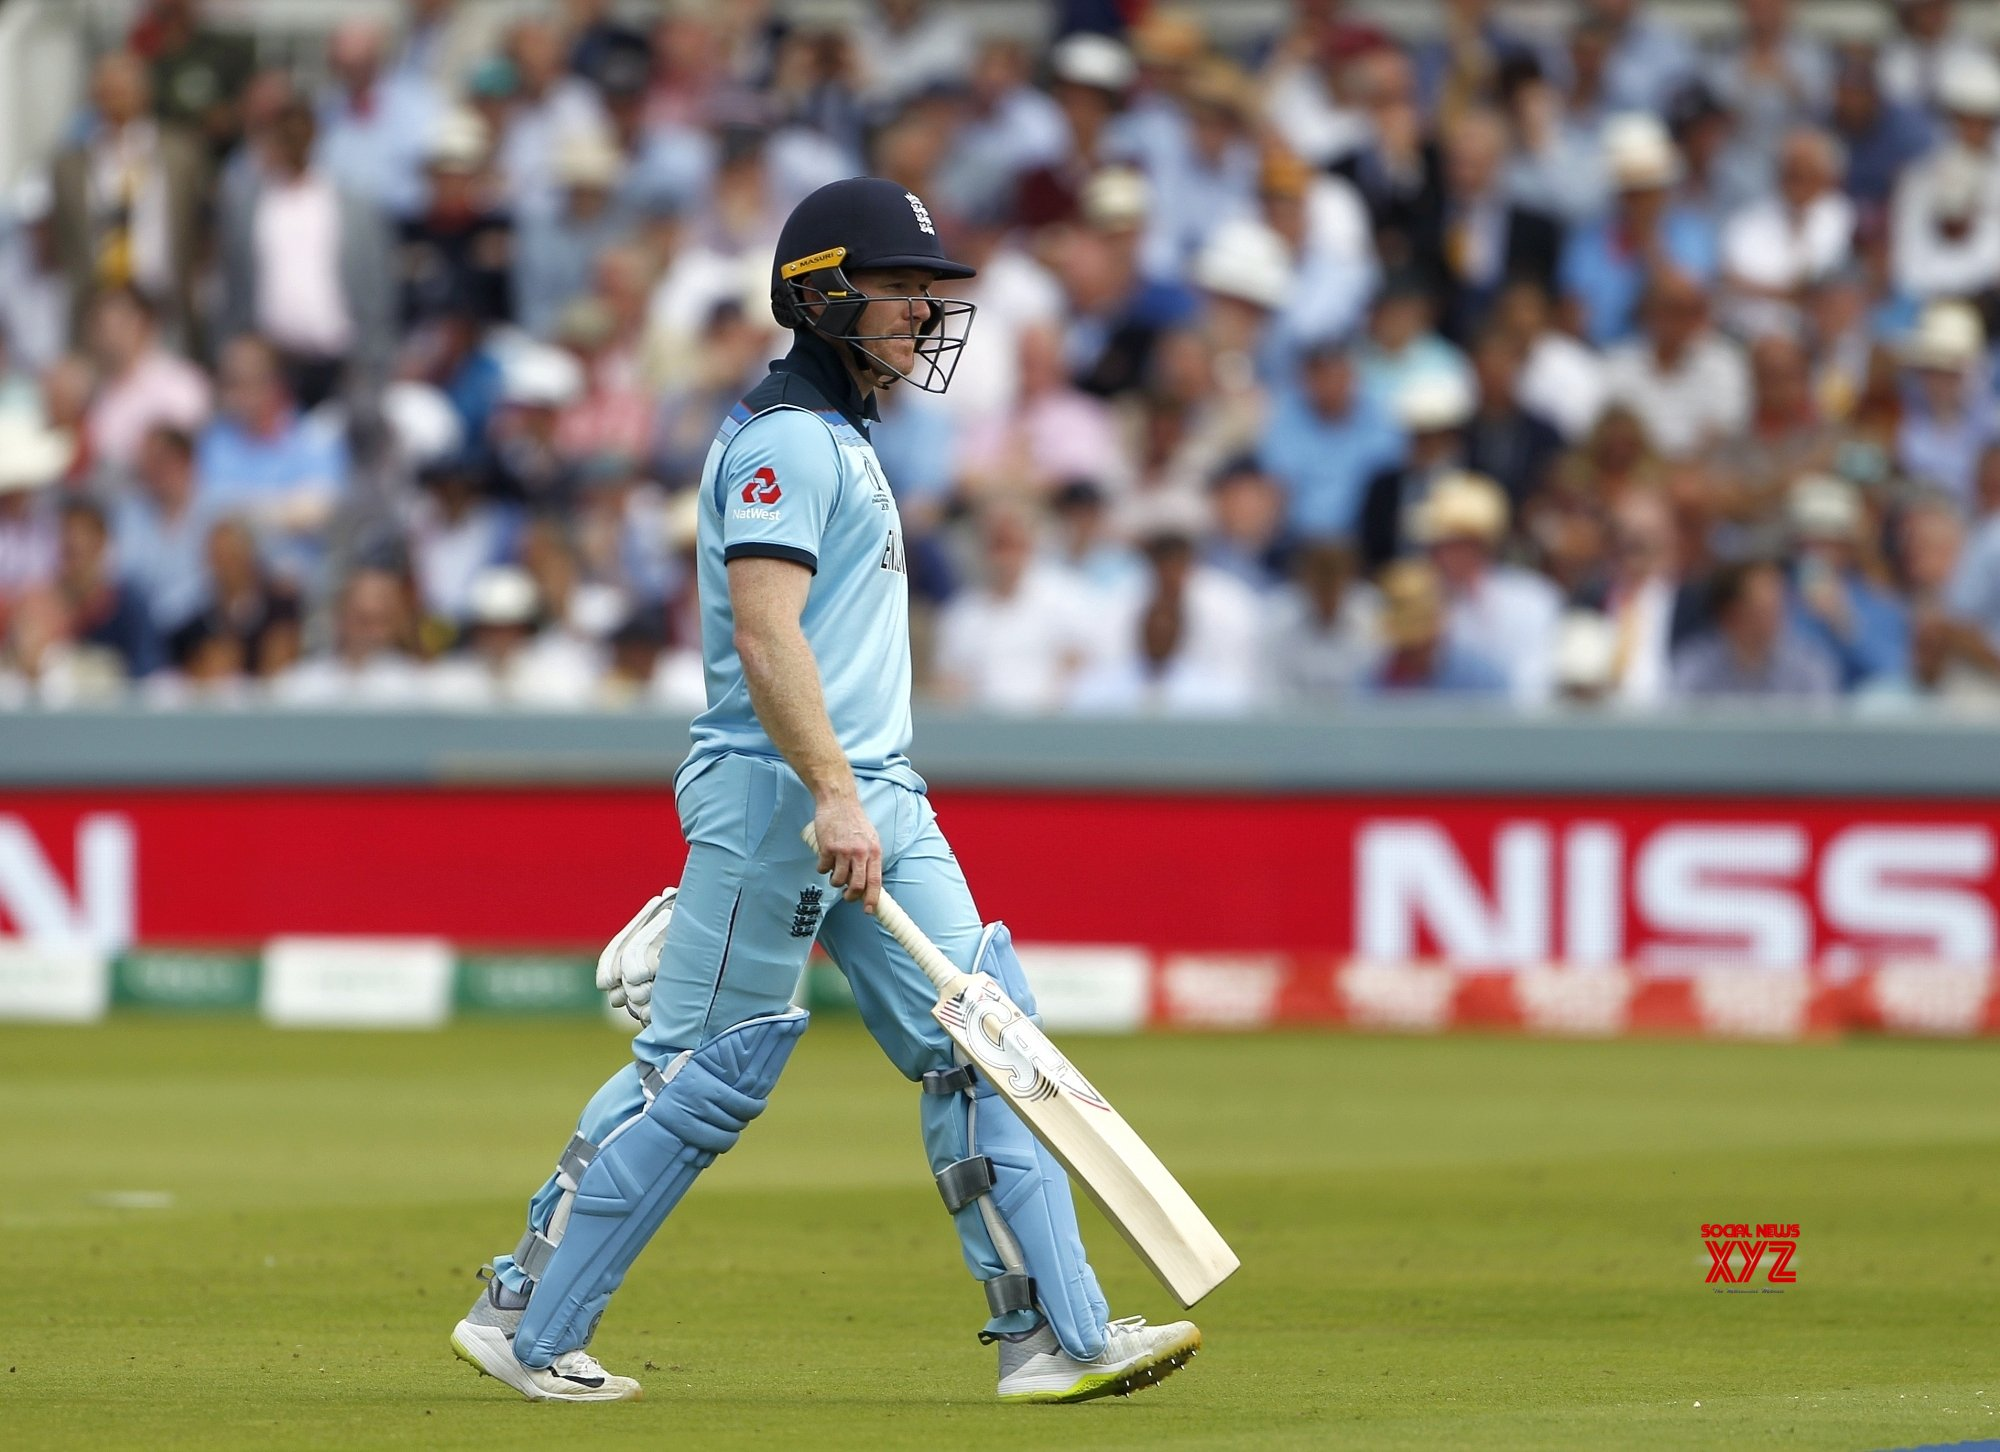 London (England): 2019 World Cup - Final - New Zealand Vs England (Batch - 41) #Gallery